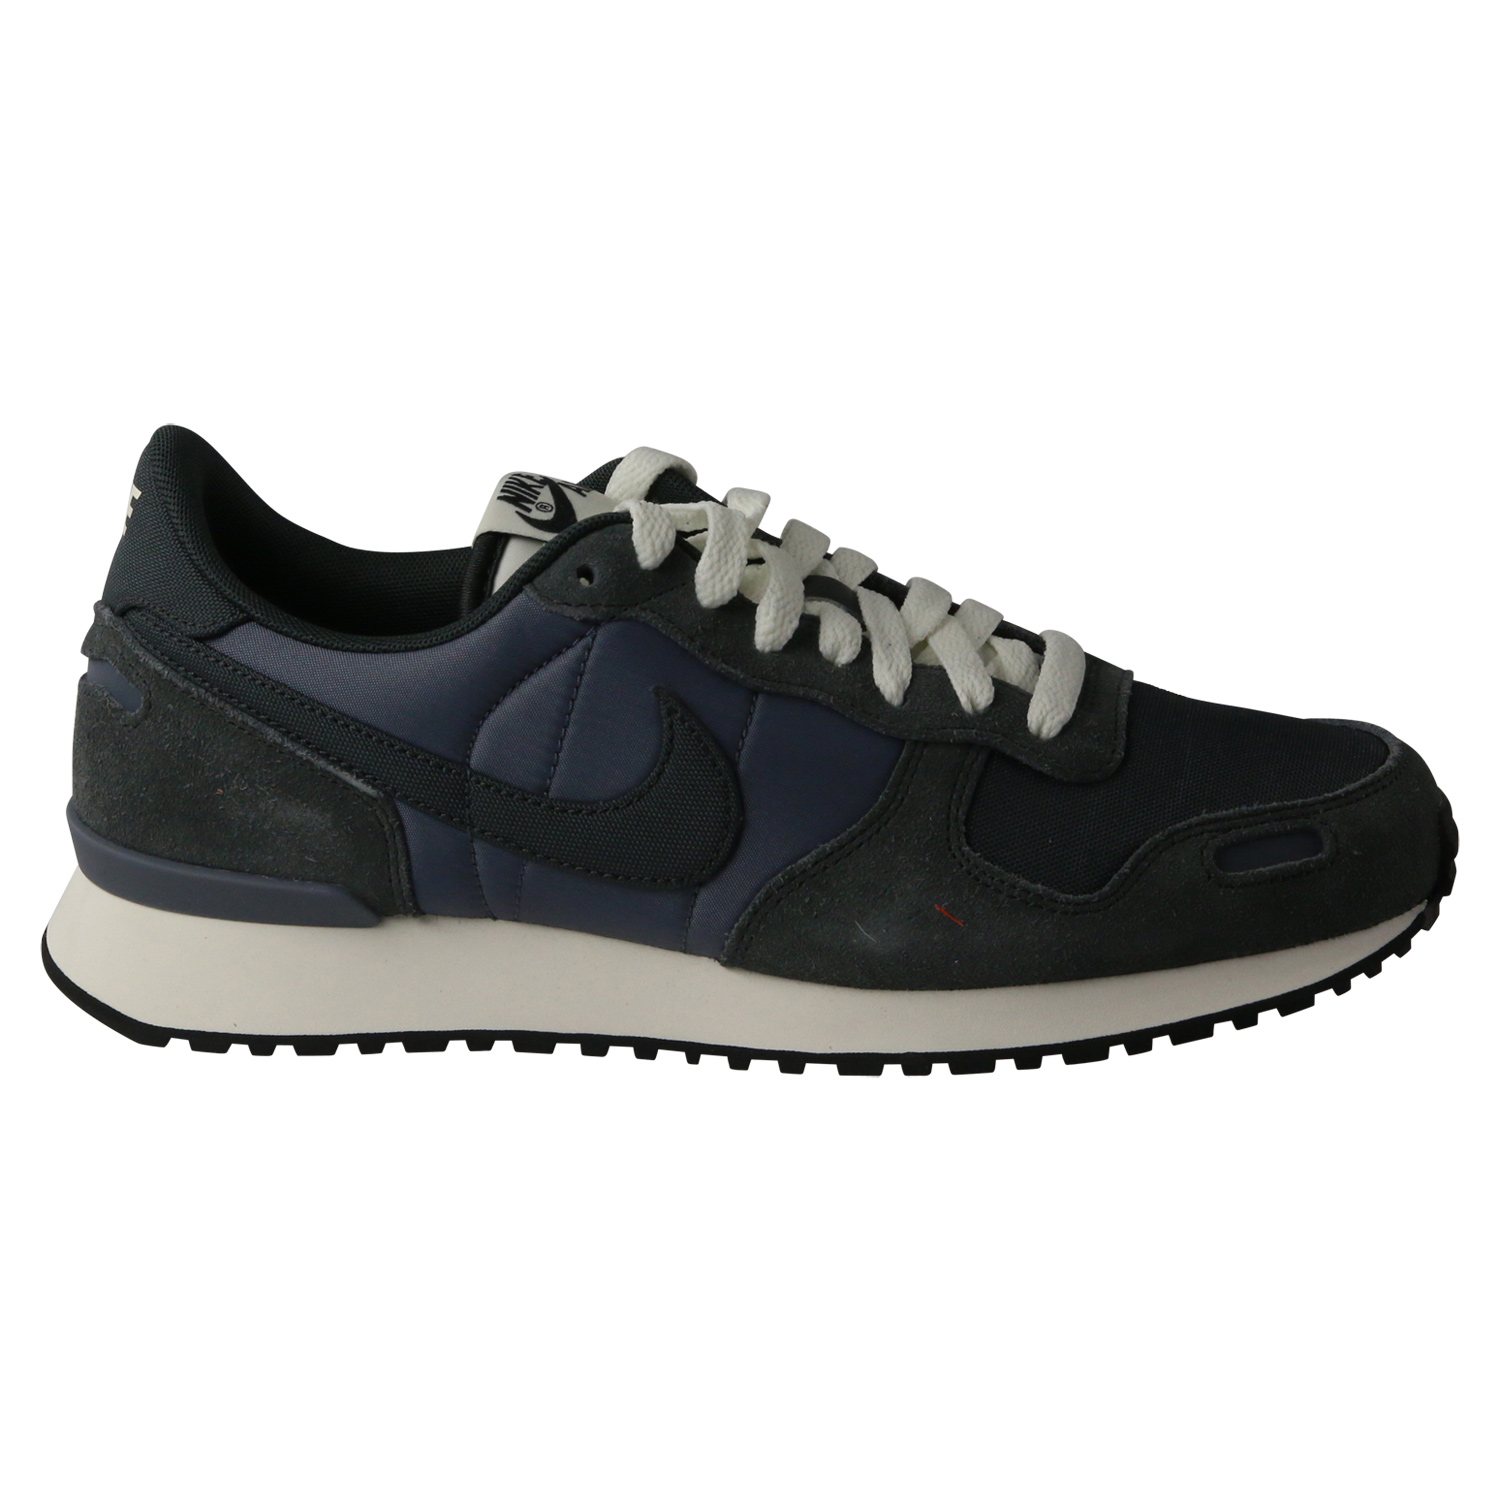 Nike Air VRTX Vortex grau 903896 015